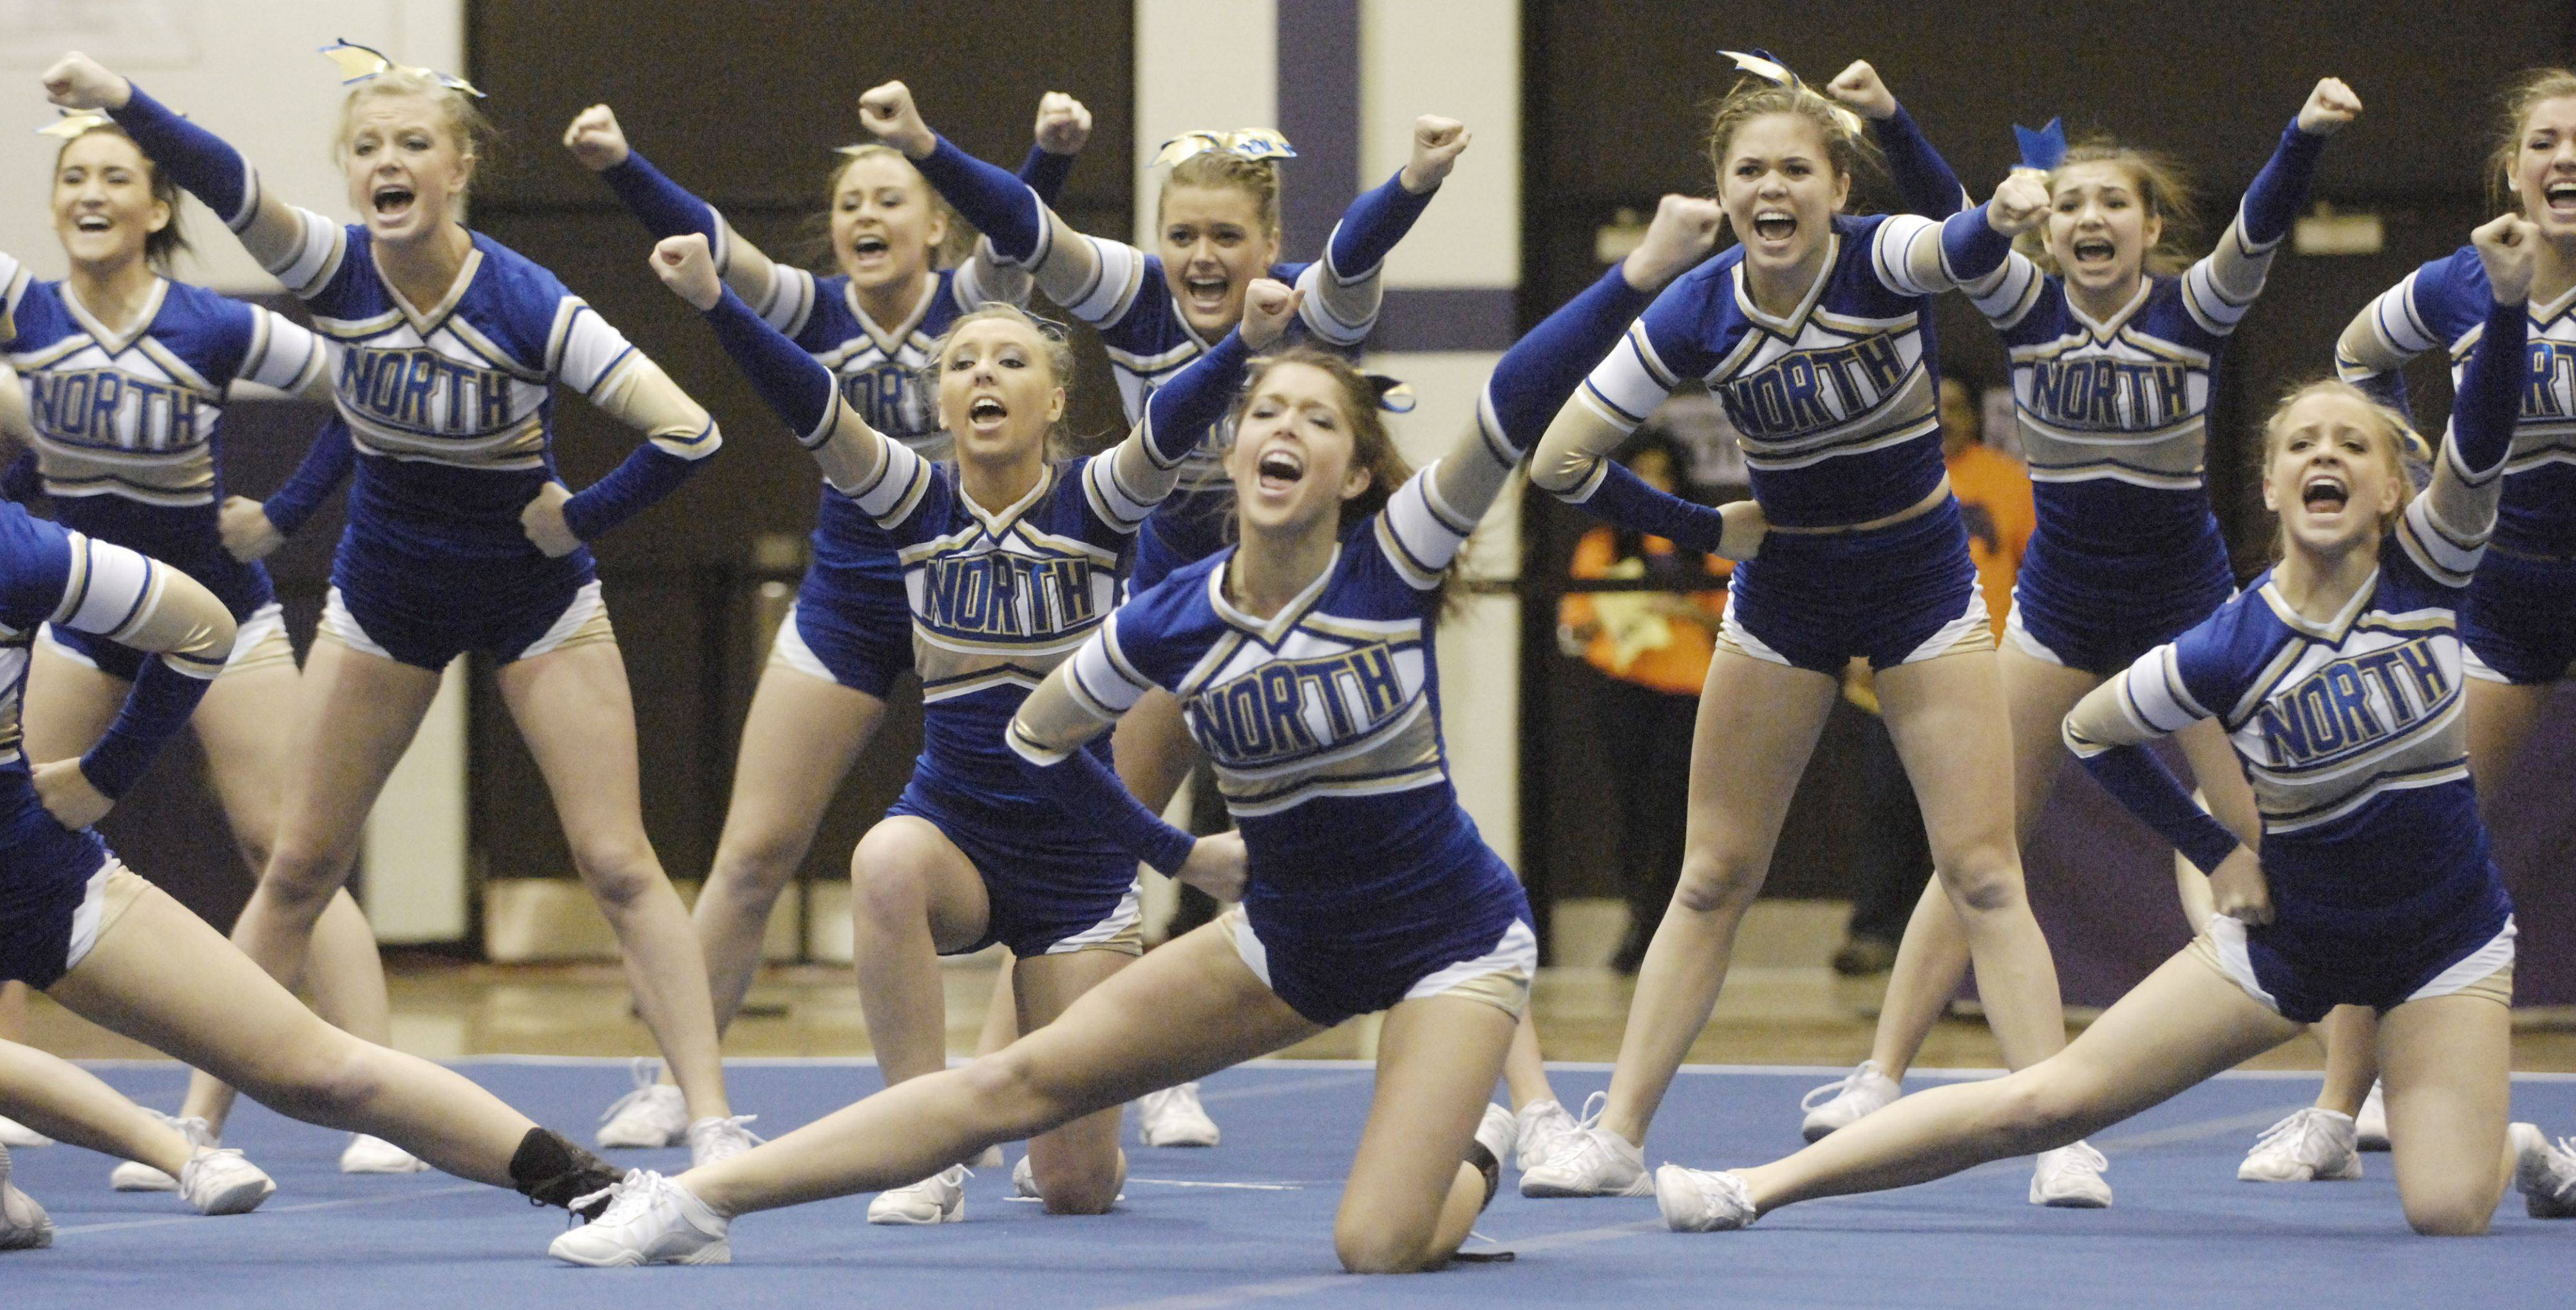 Wheaton North competes during Saturday's cheerleading sectional hosted by Rolling Meadows High School.